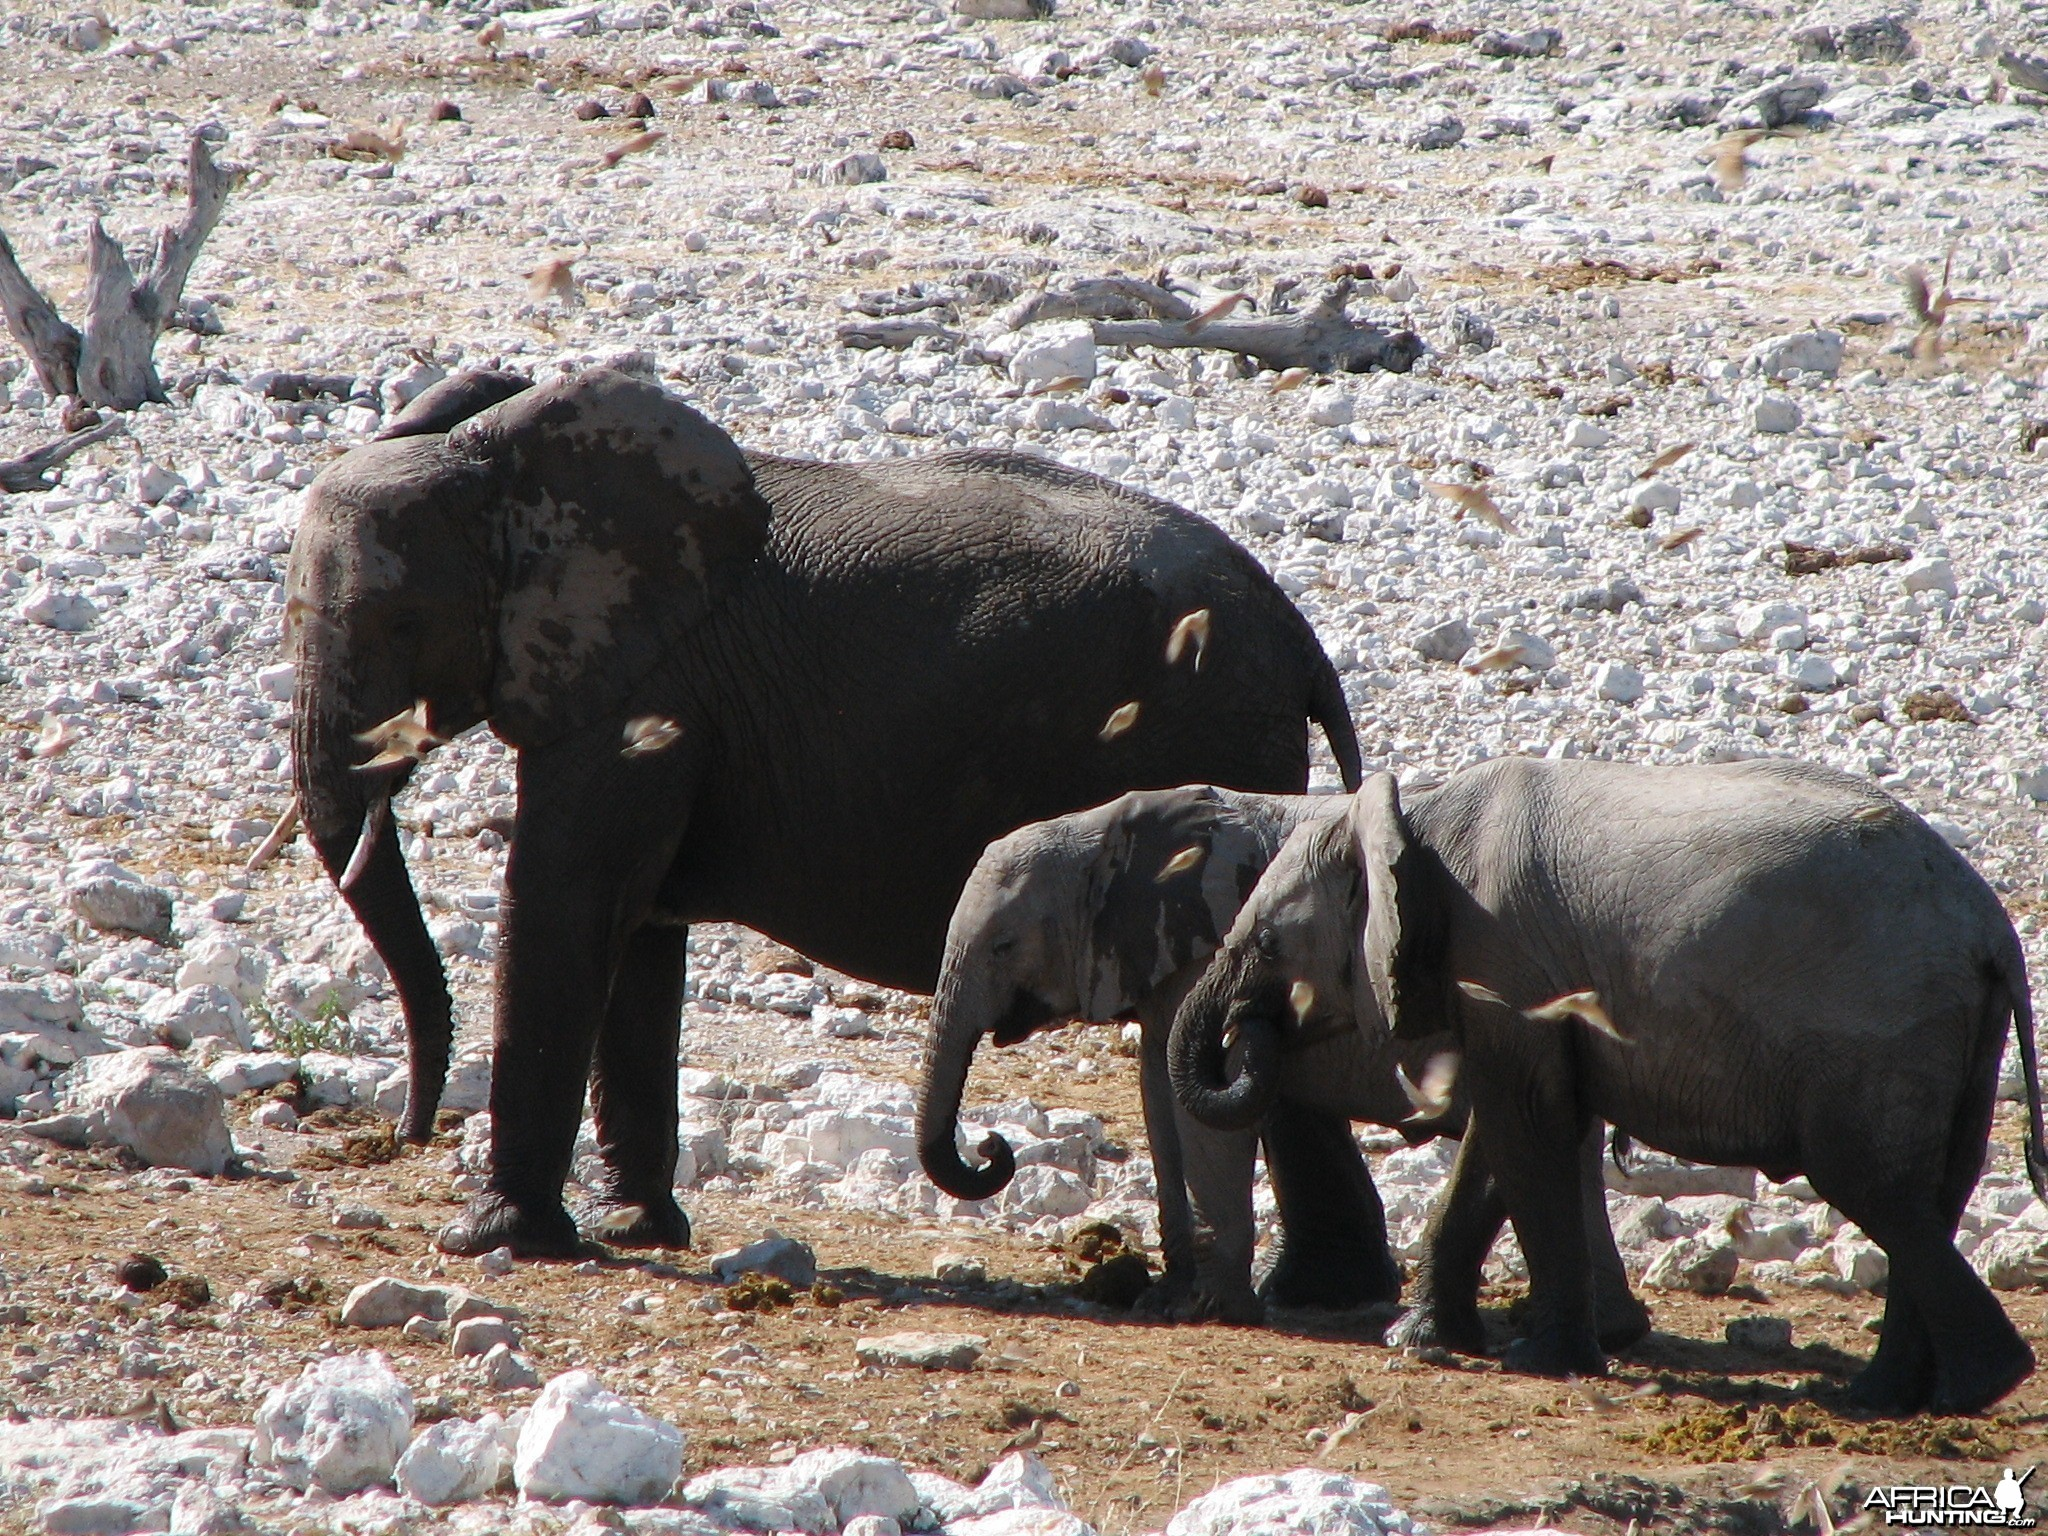 Elephants at Etosha National Park, Namibia